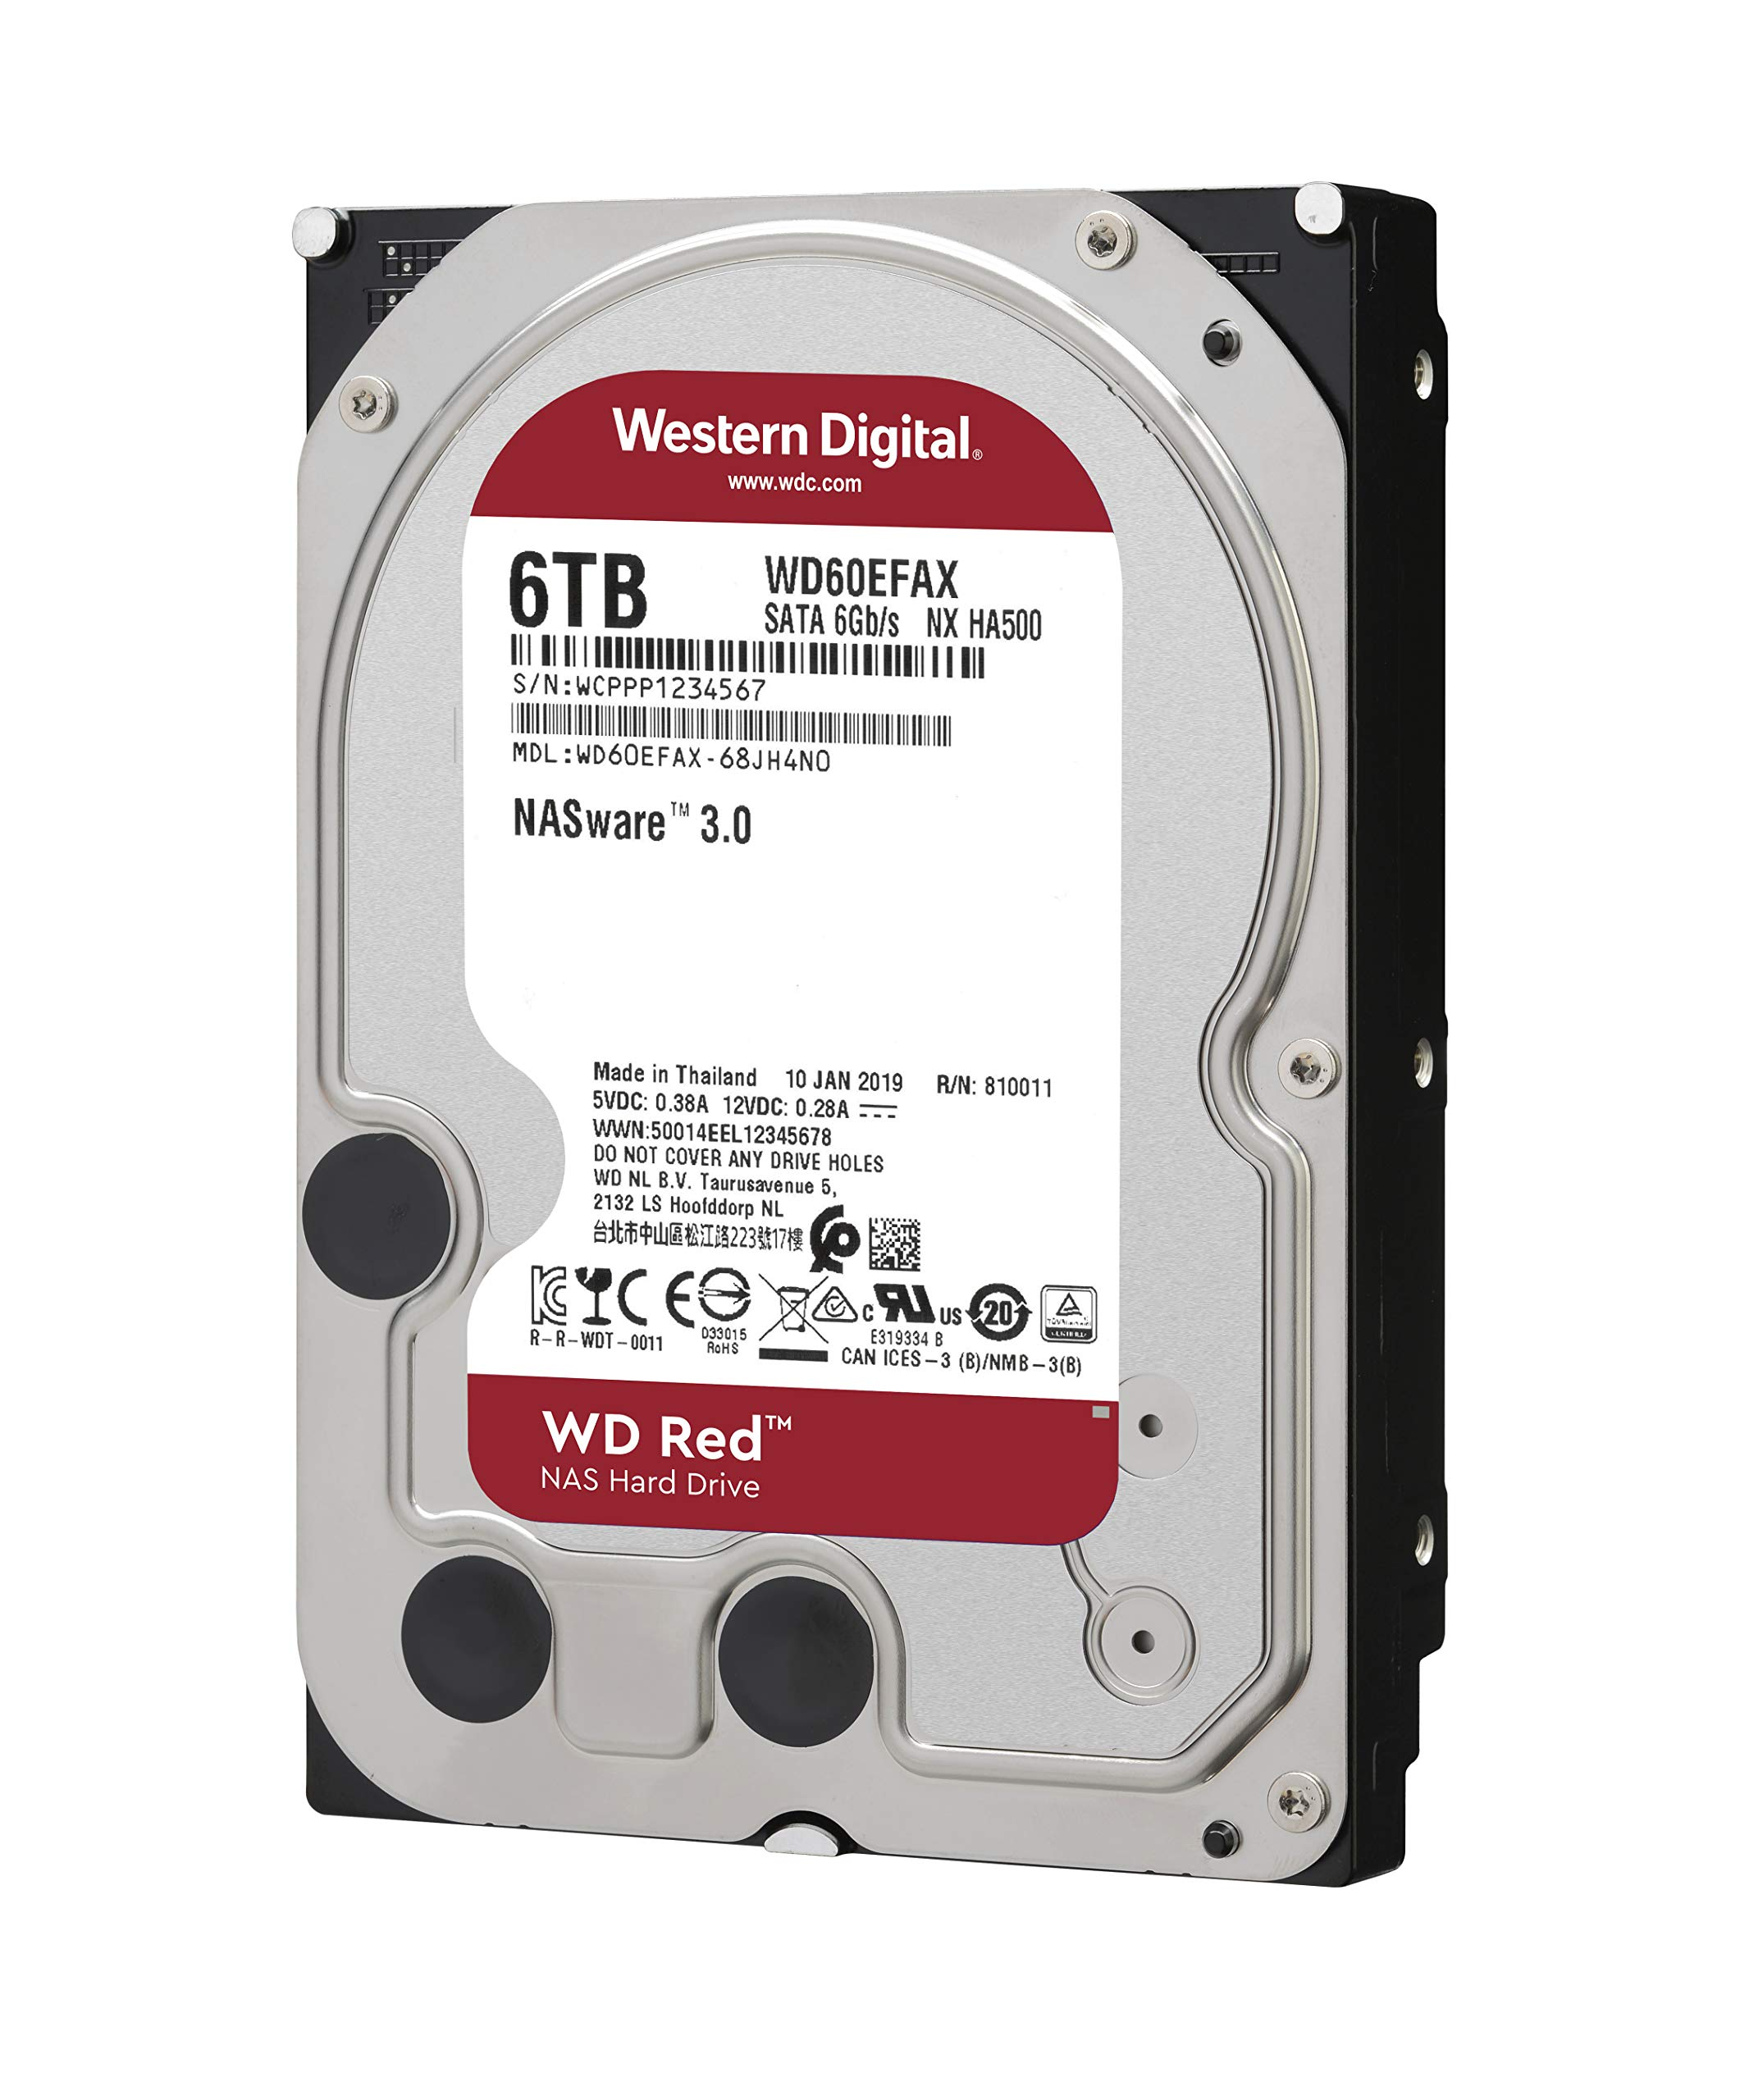 WD Red 6TB NAS Internal Hard Drive - 5400 RPM Class, SATA 6 GB/S, 256MB Cache, 3.5'' - WD60EFAX by Western Digital (Image #2)